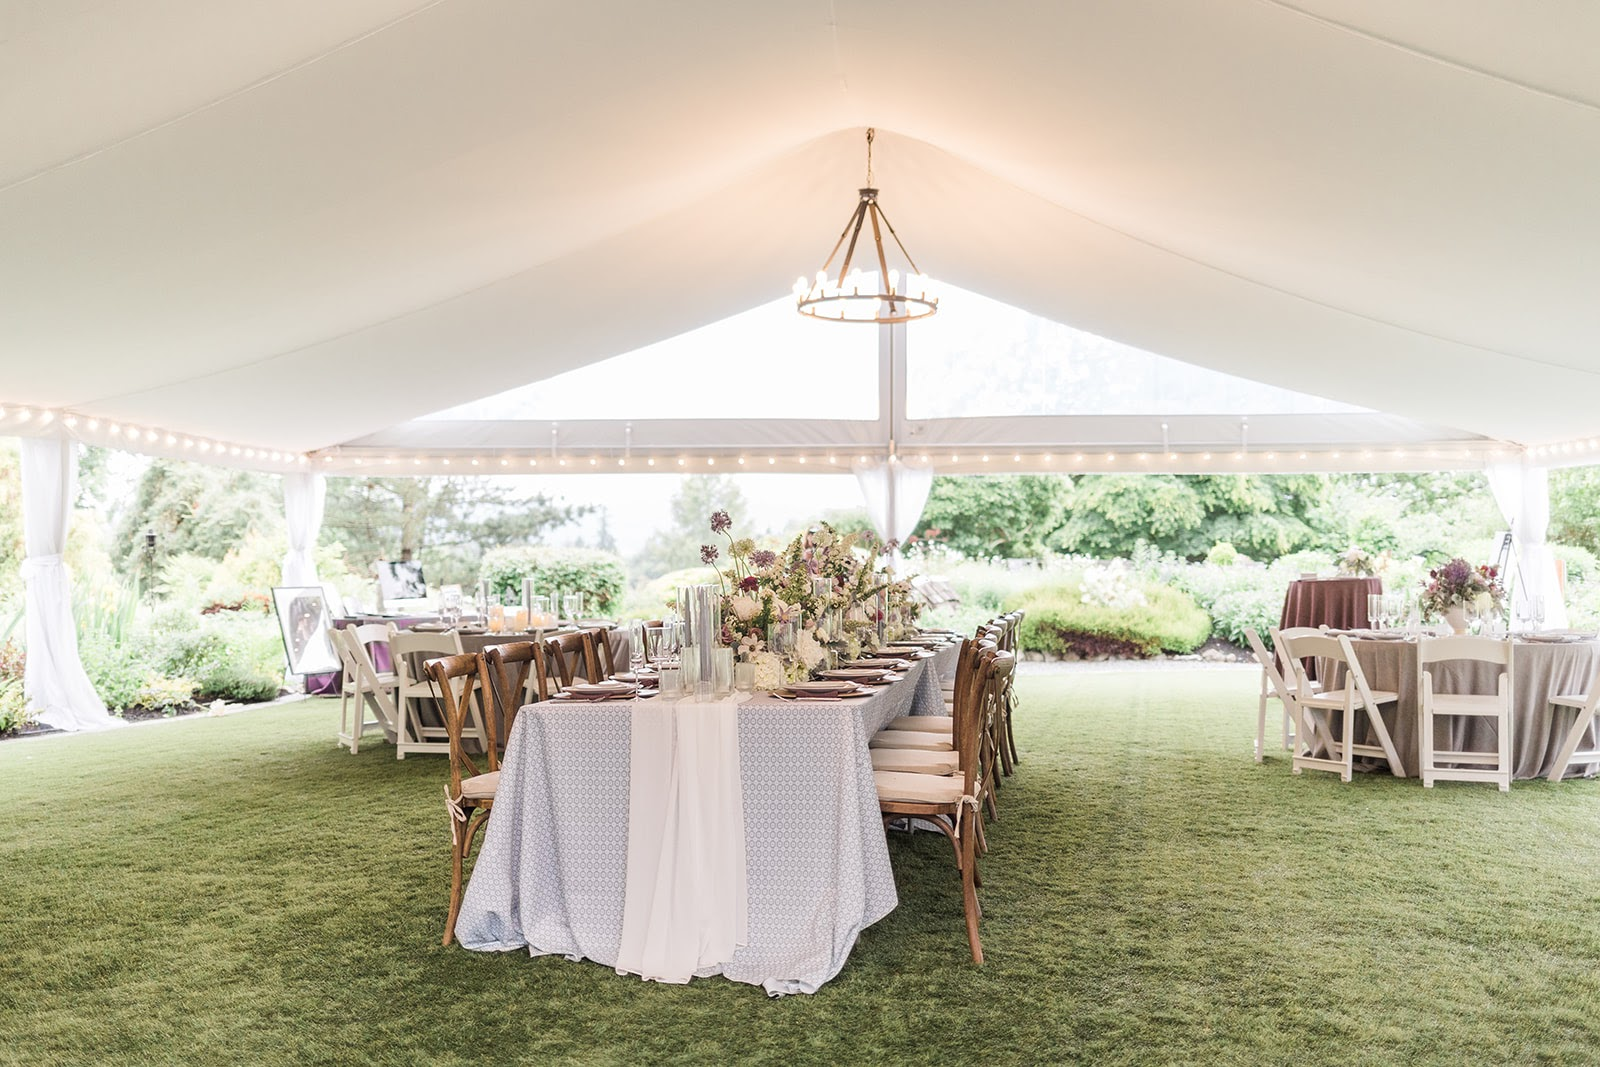 The 2021 Event Tents Guide Every Planner Needs to Read